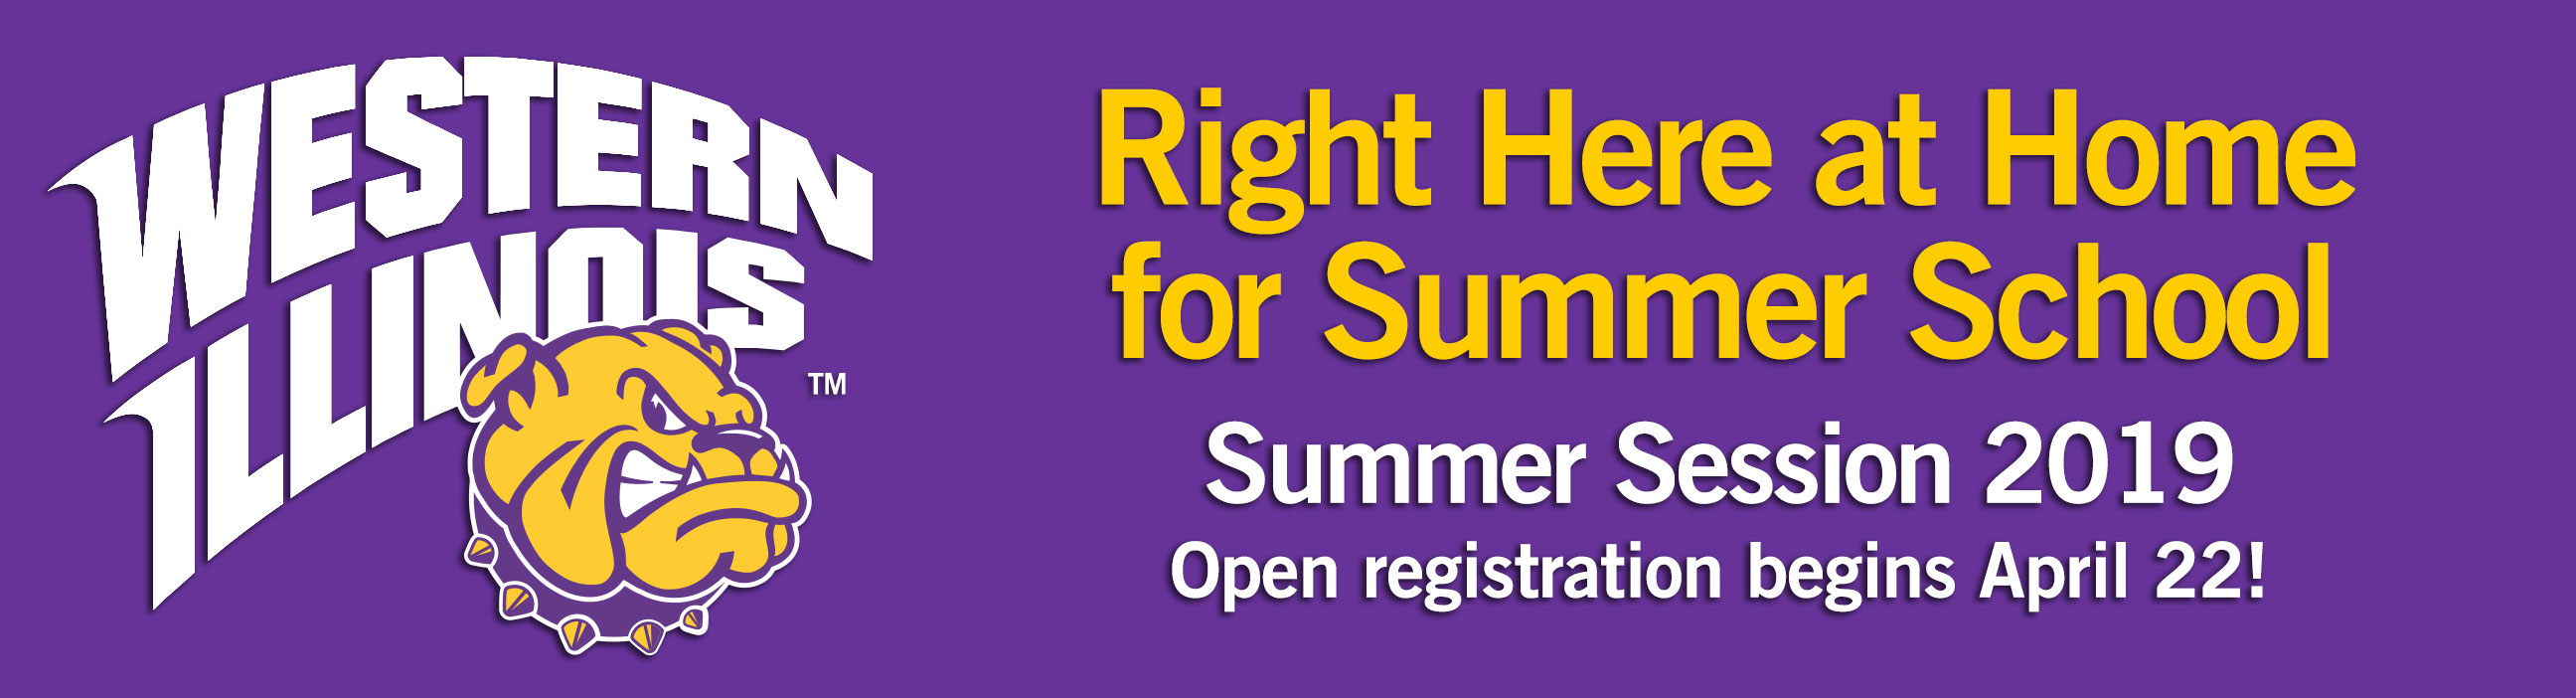 Western Illinois University - Quad Cities Summer Session